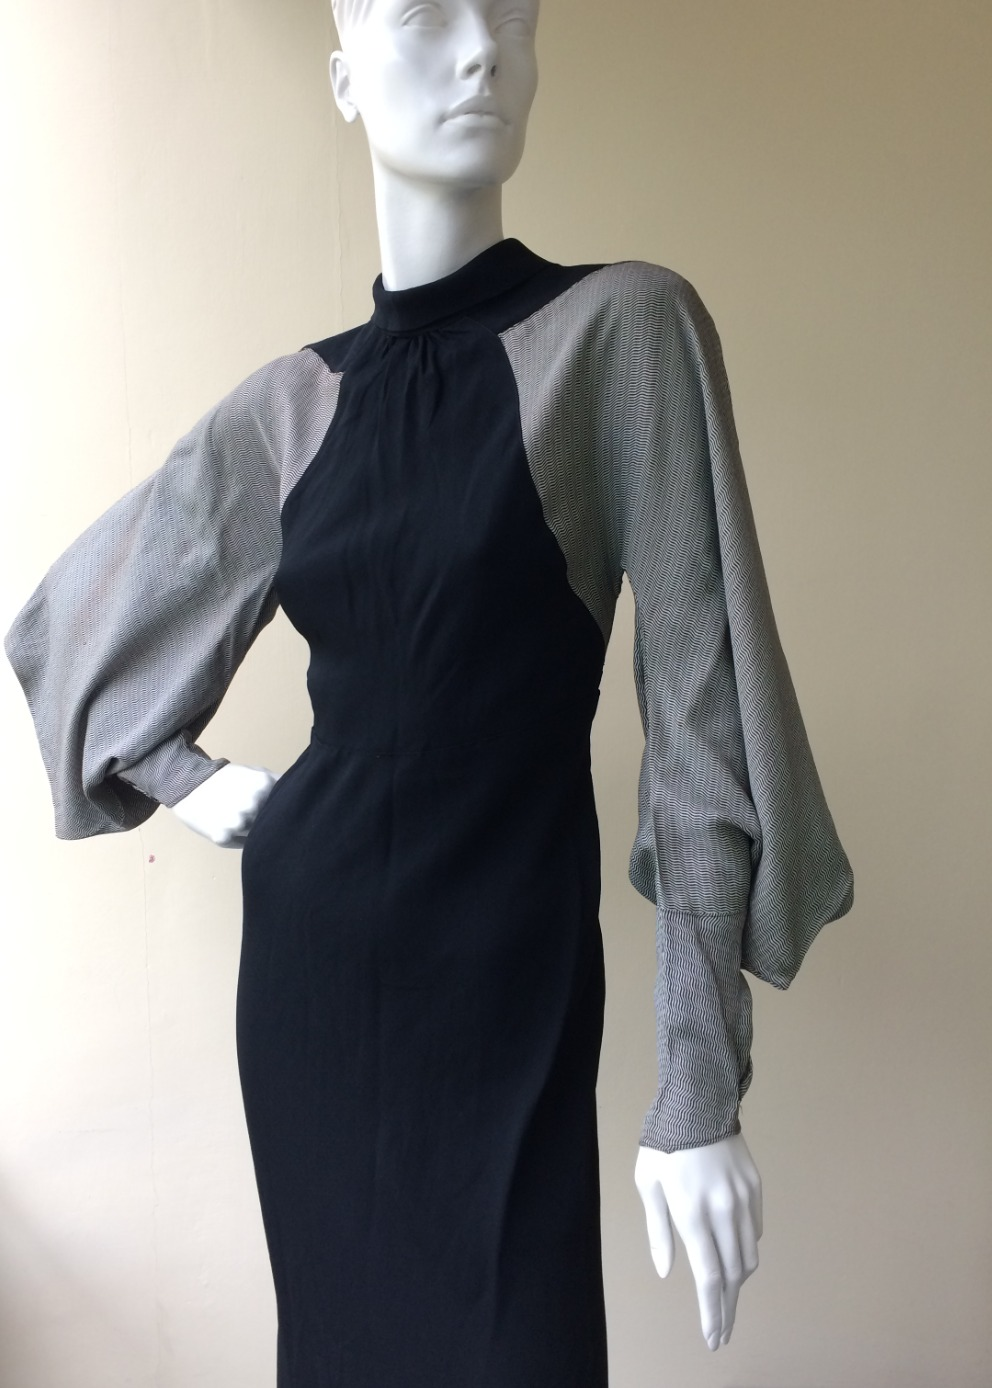 1930s dress with great sleeve